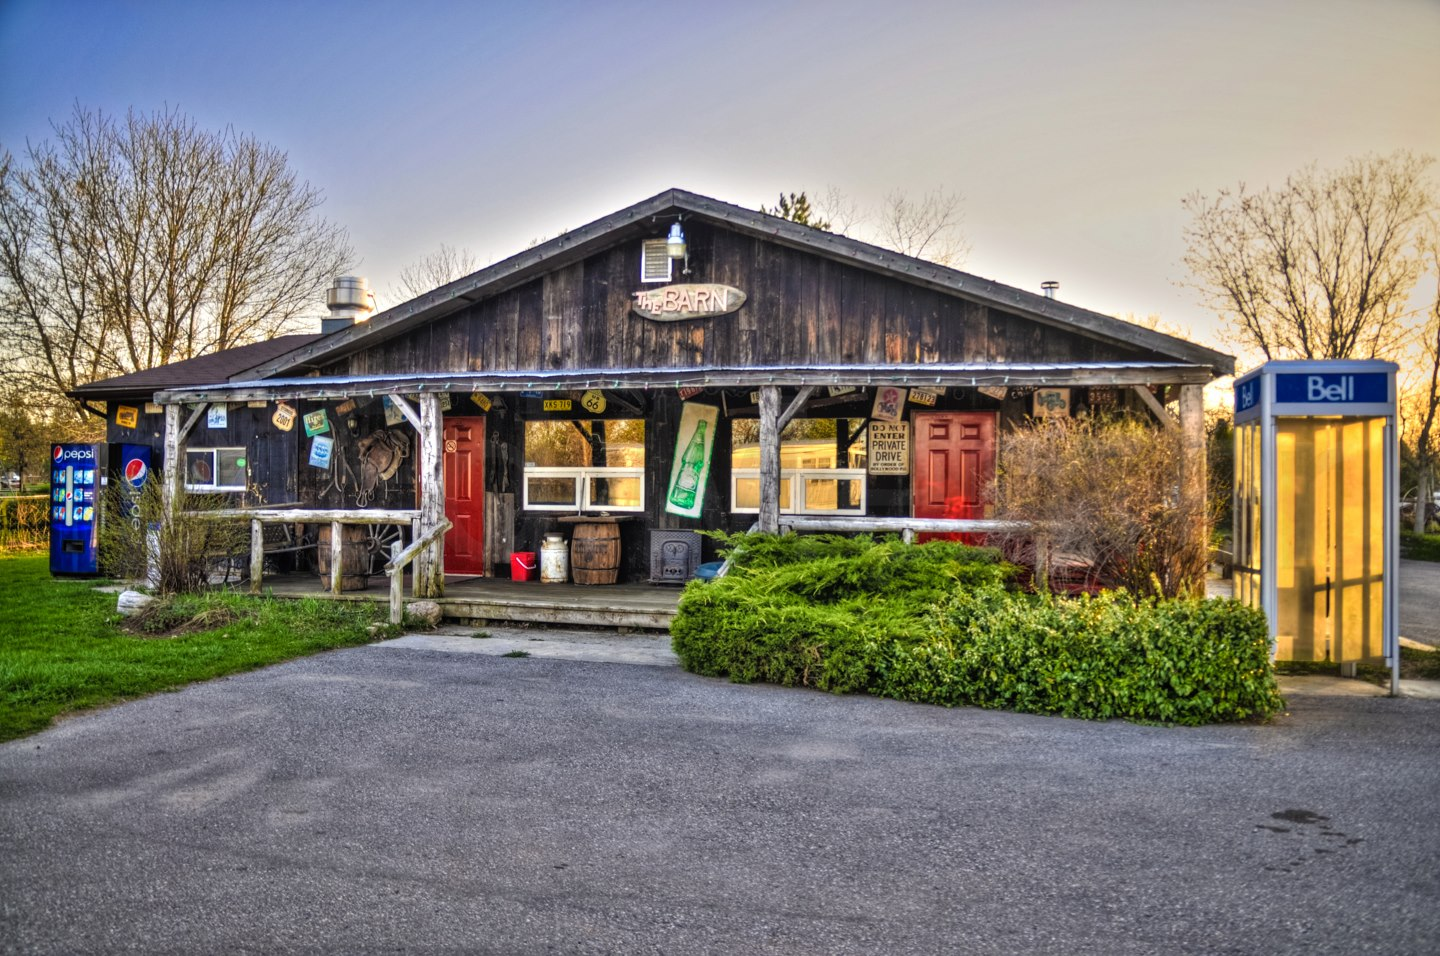 The Barn & Grill